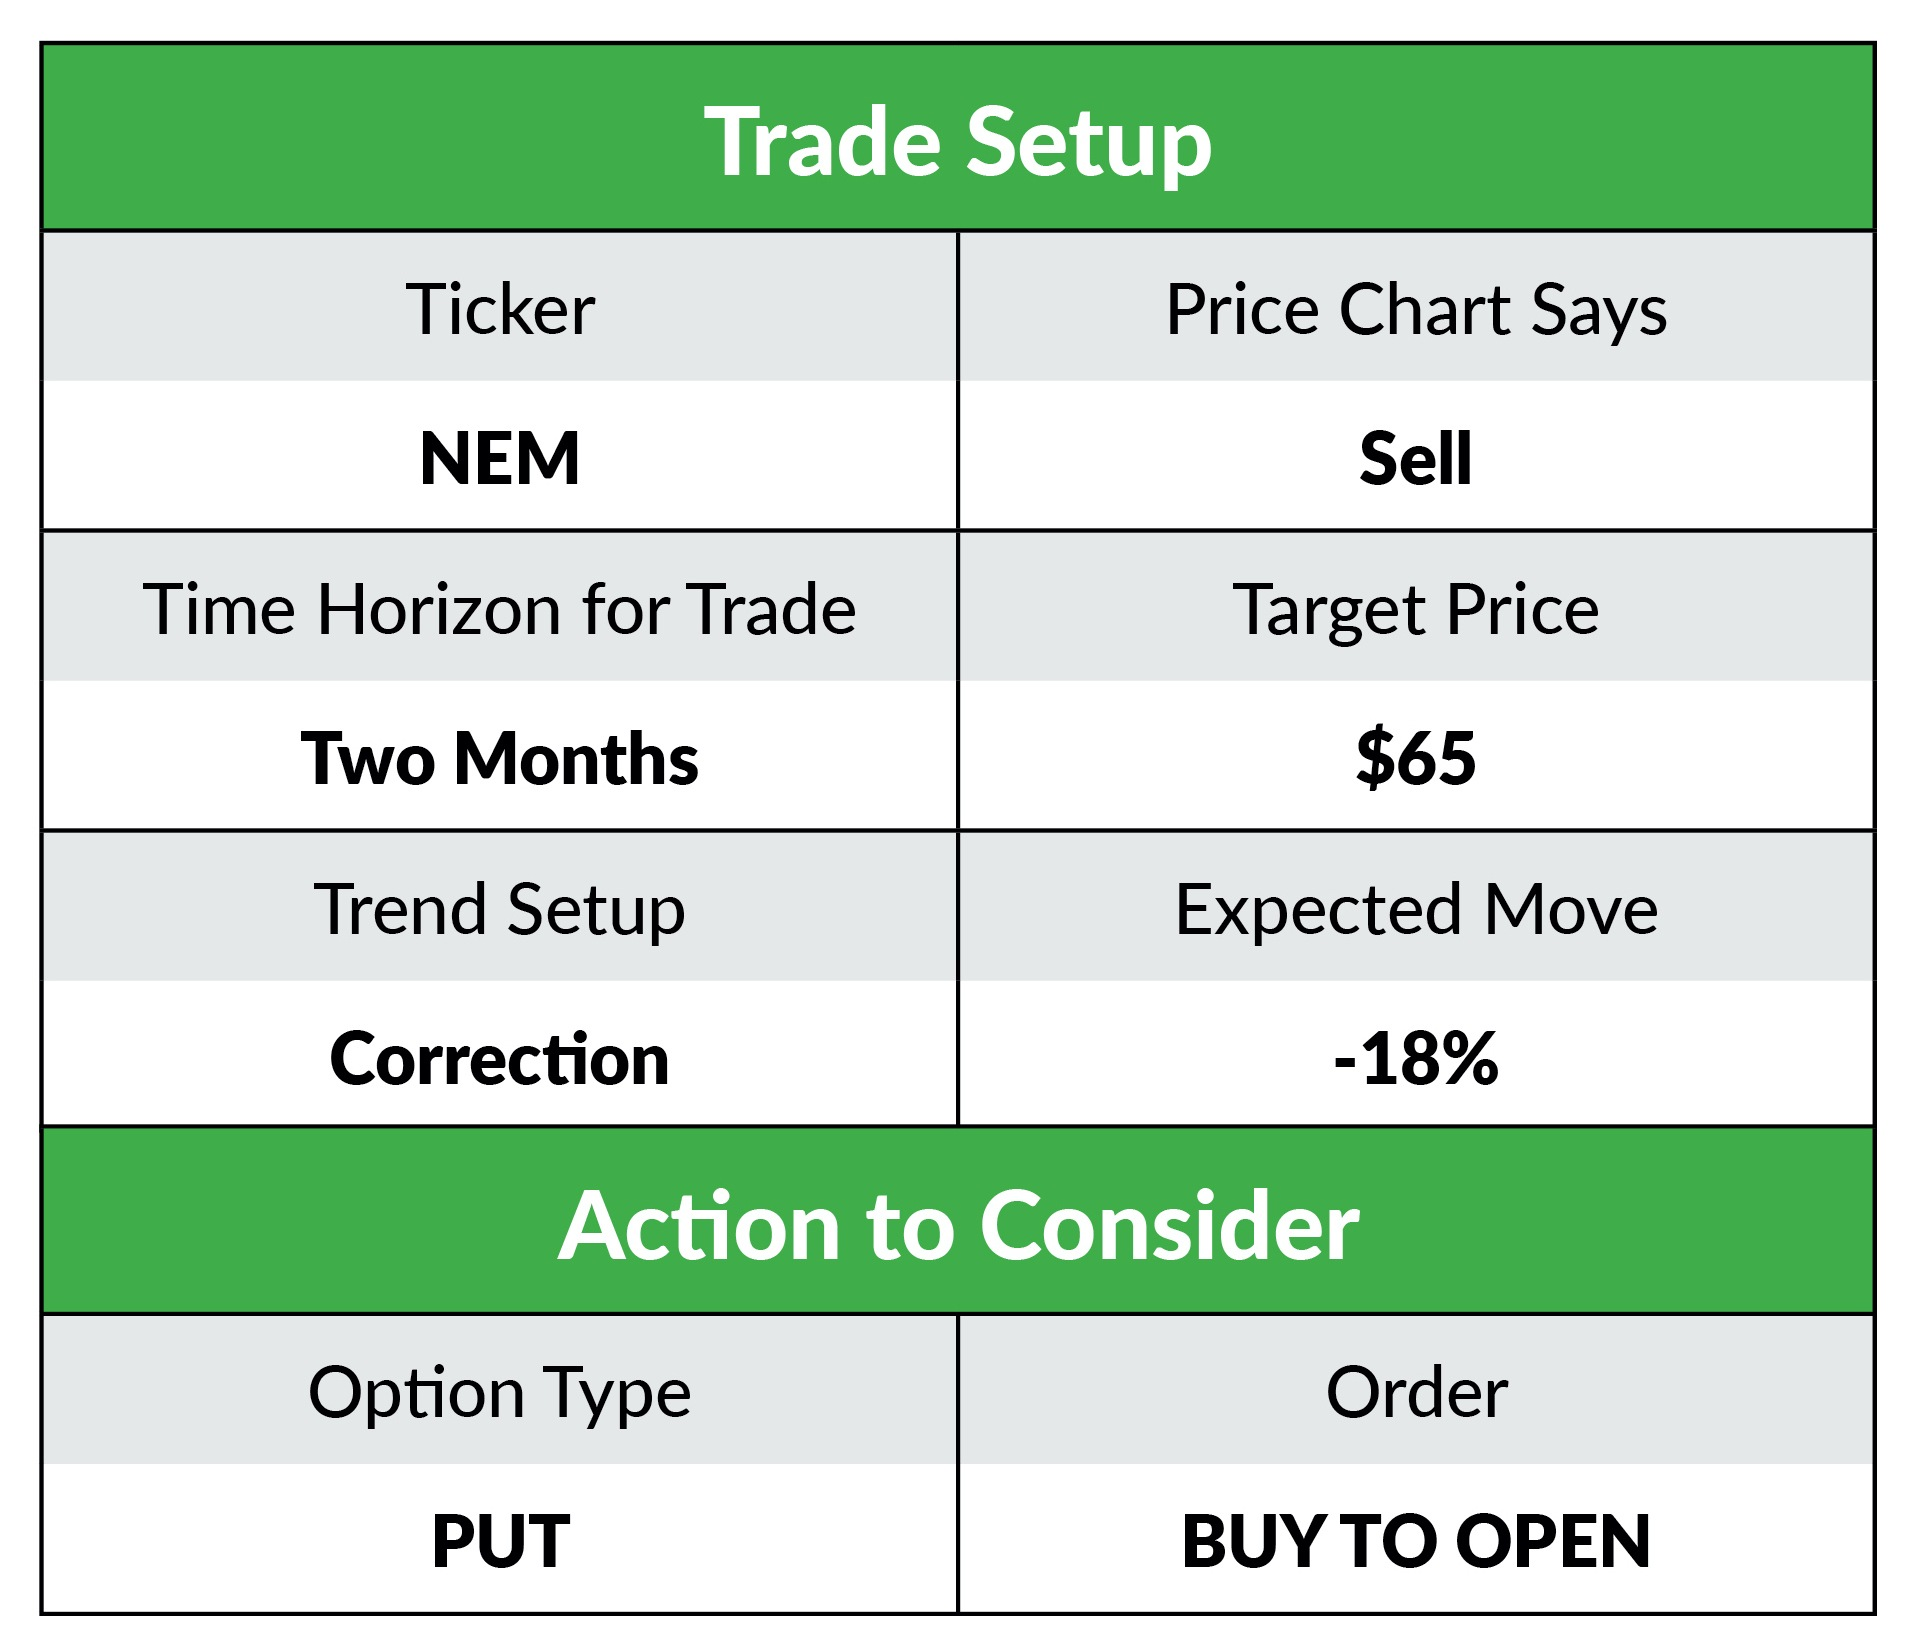 Table showing the details of the recommended trade. We recommend subscribers buy, to open, the September 2020 option with the $65 strike price.